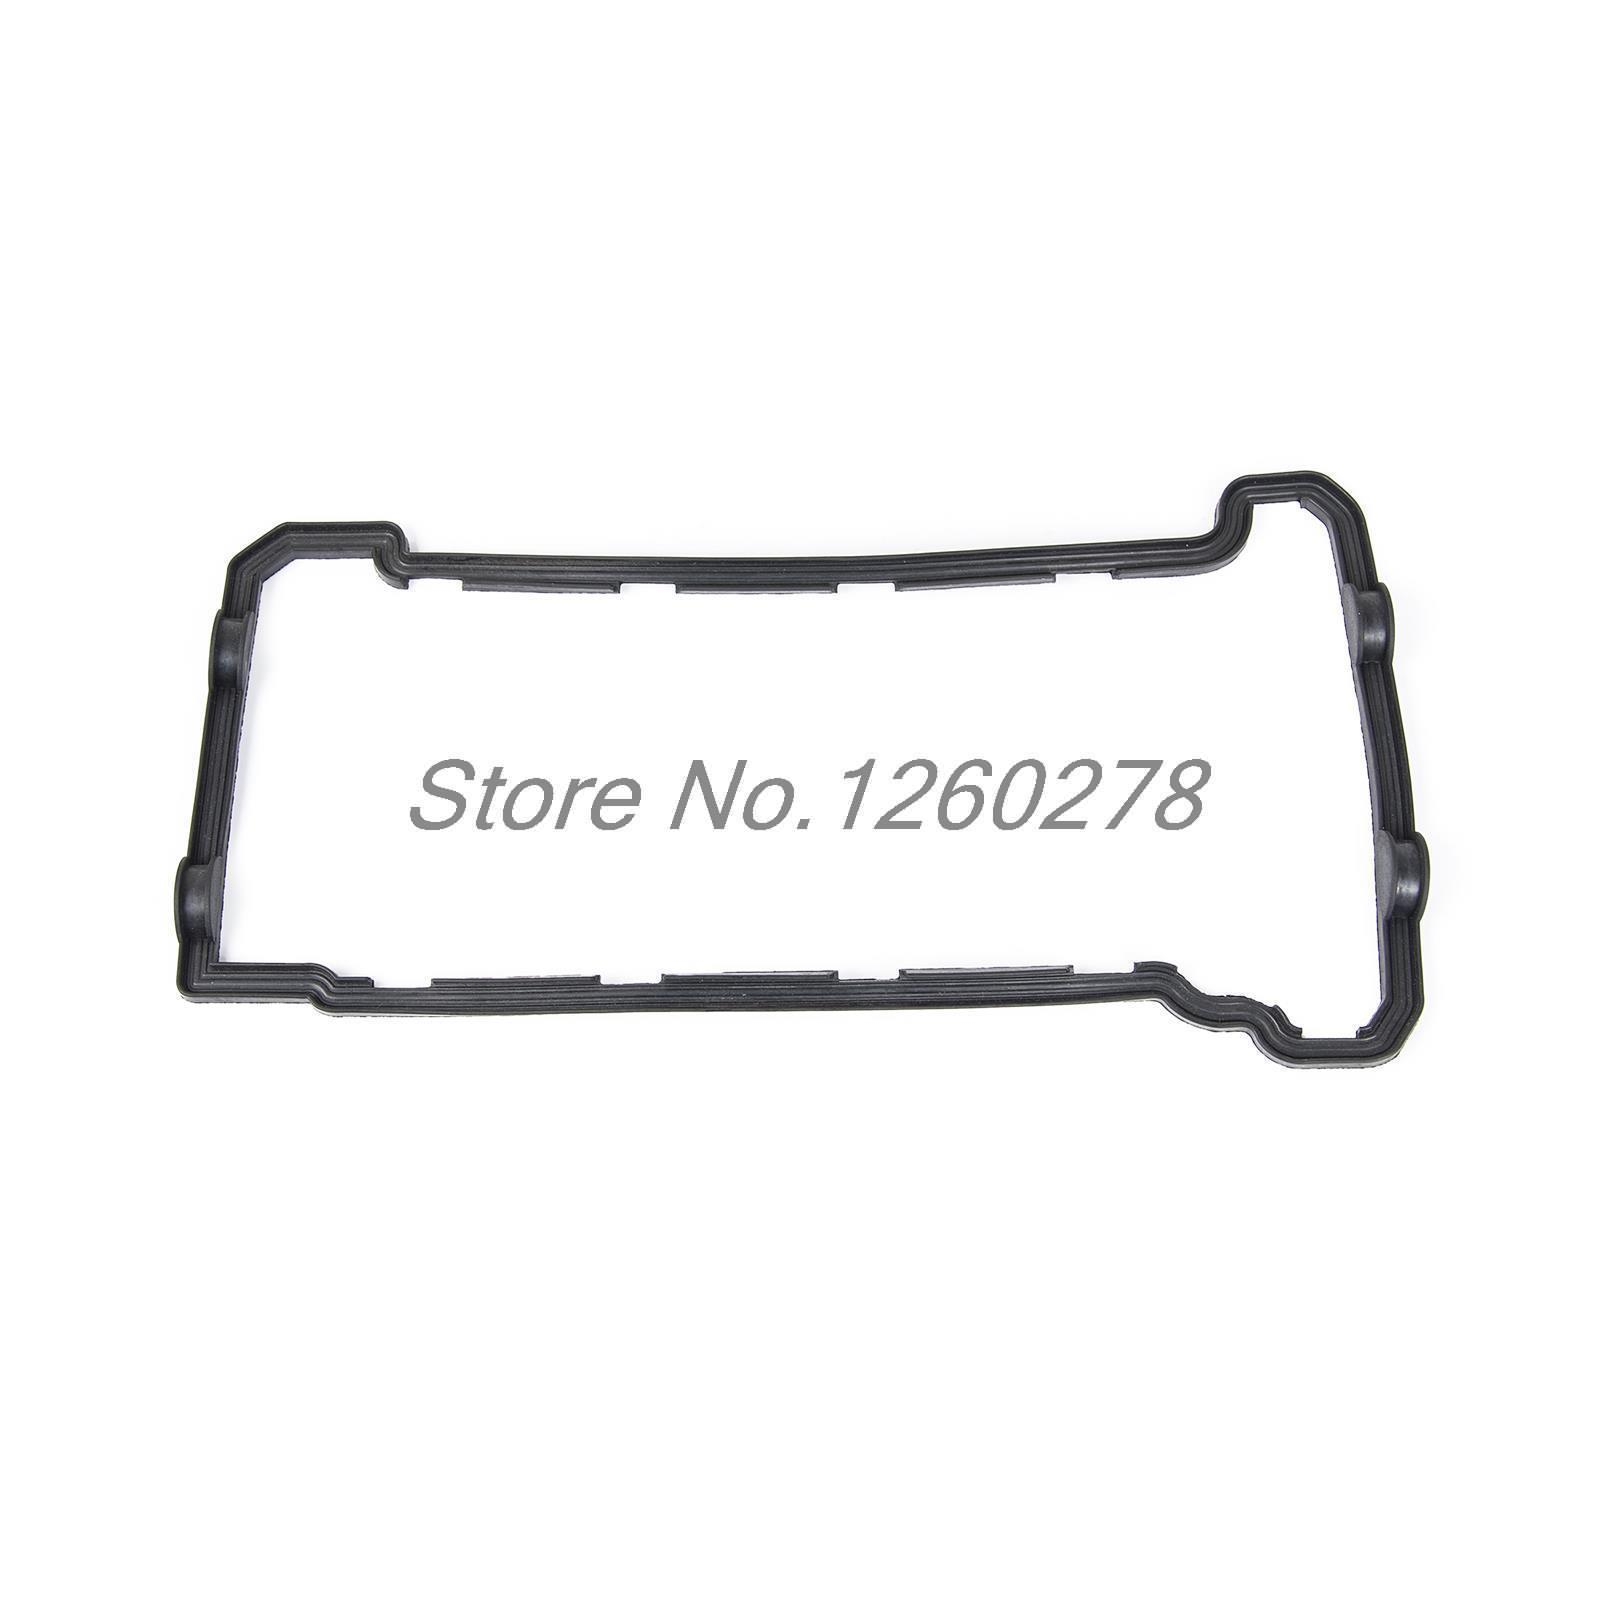 Motorcycle Parts Cylinder Head Cover Gasket For Kawasaki Zr250 Balius